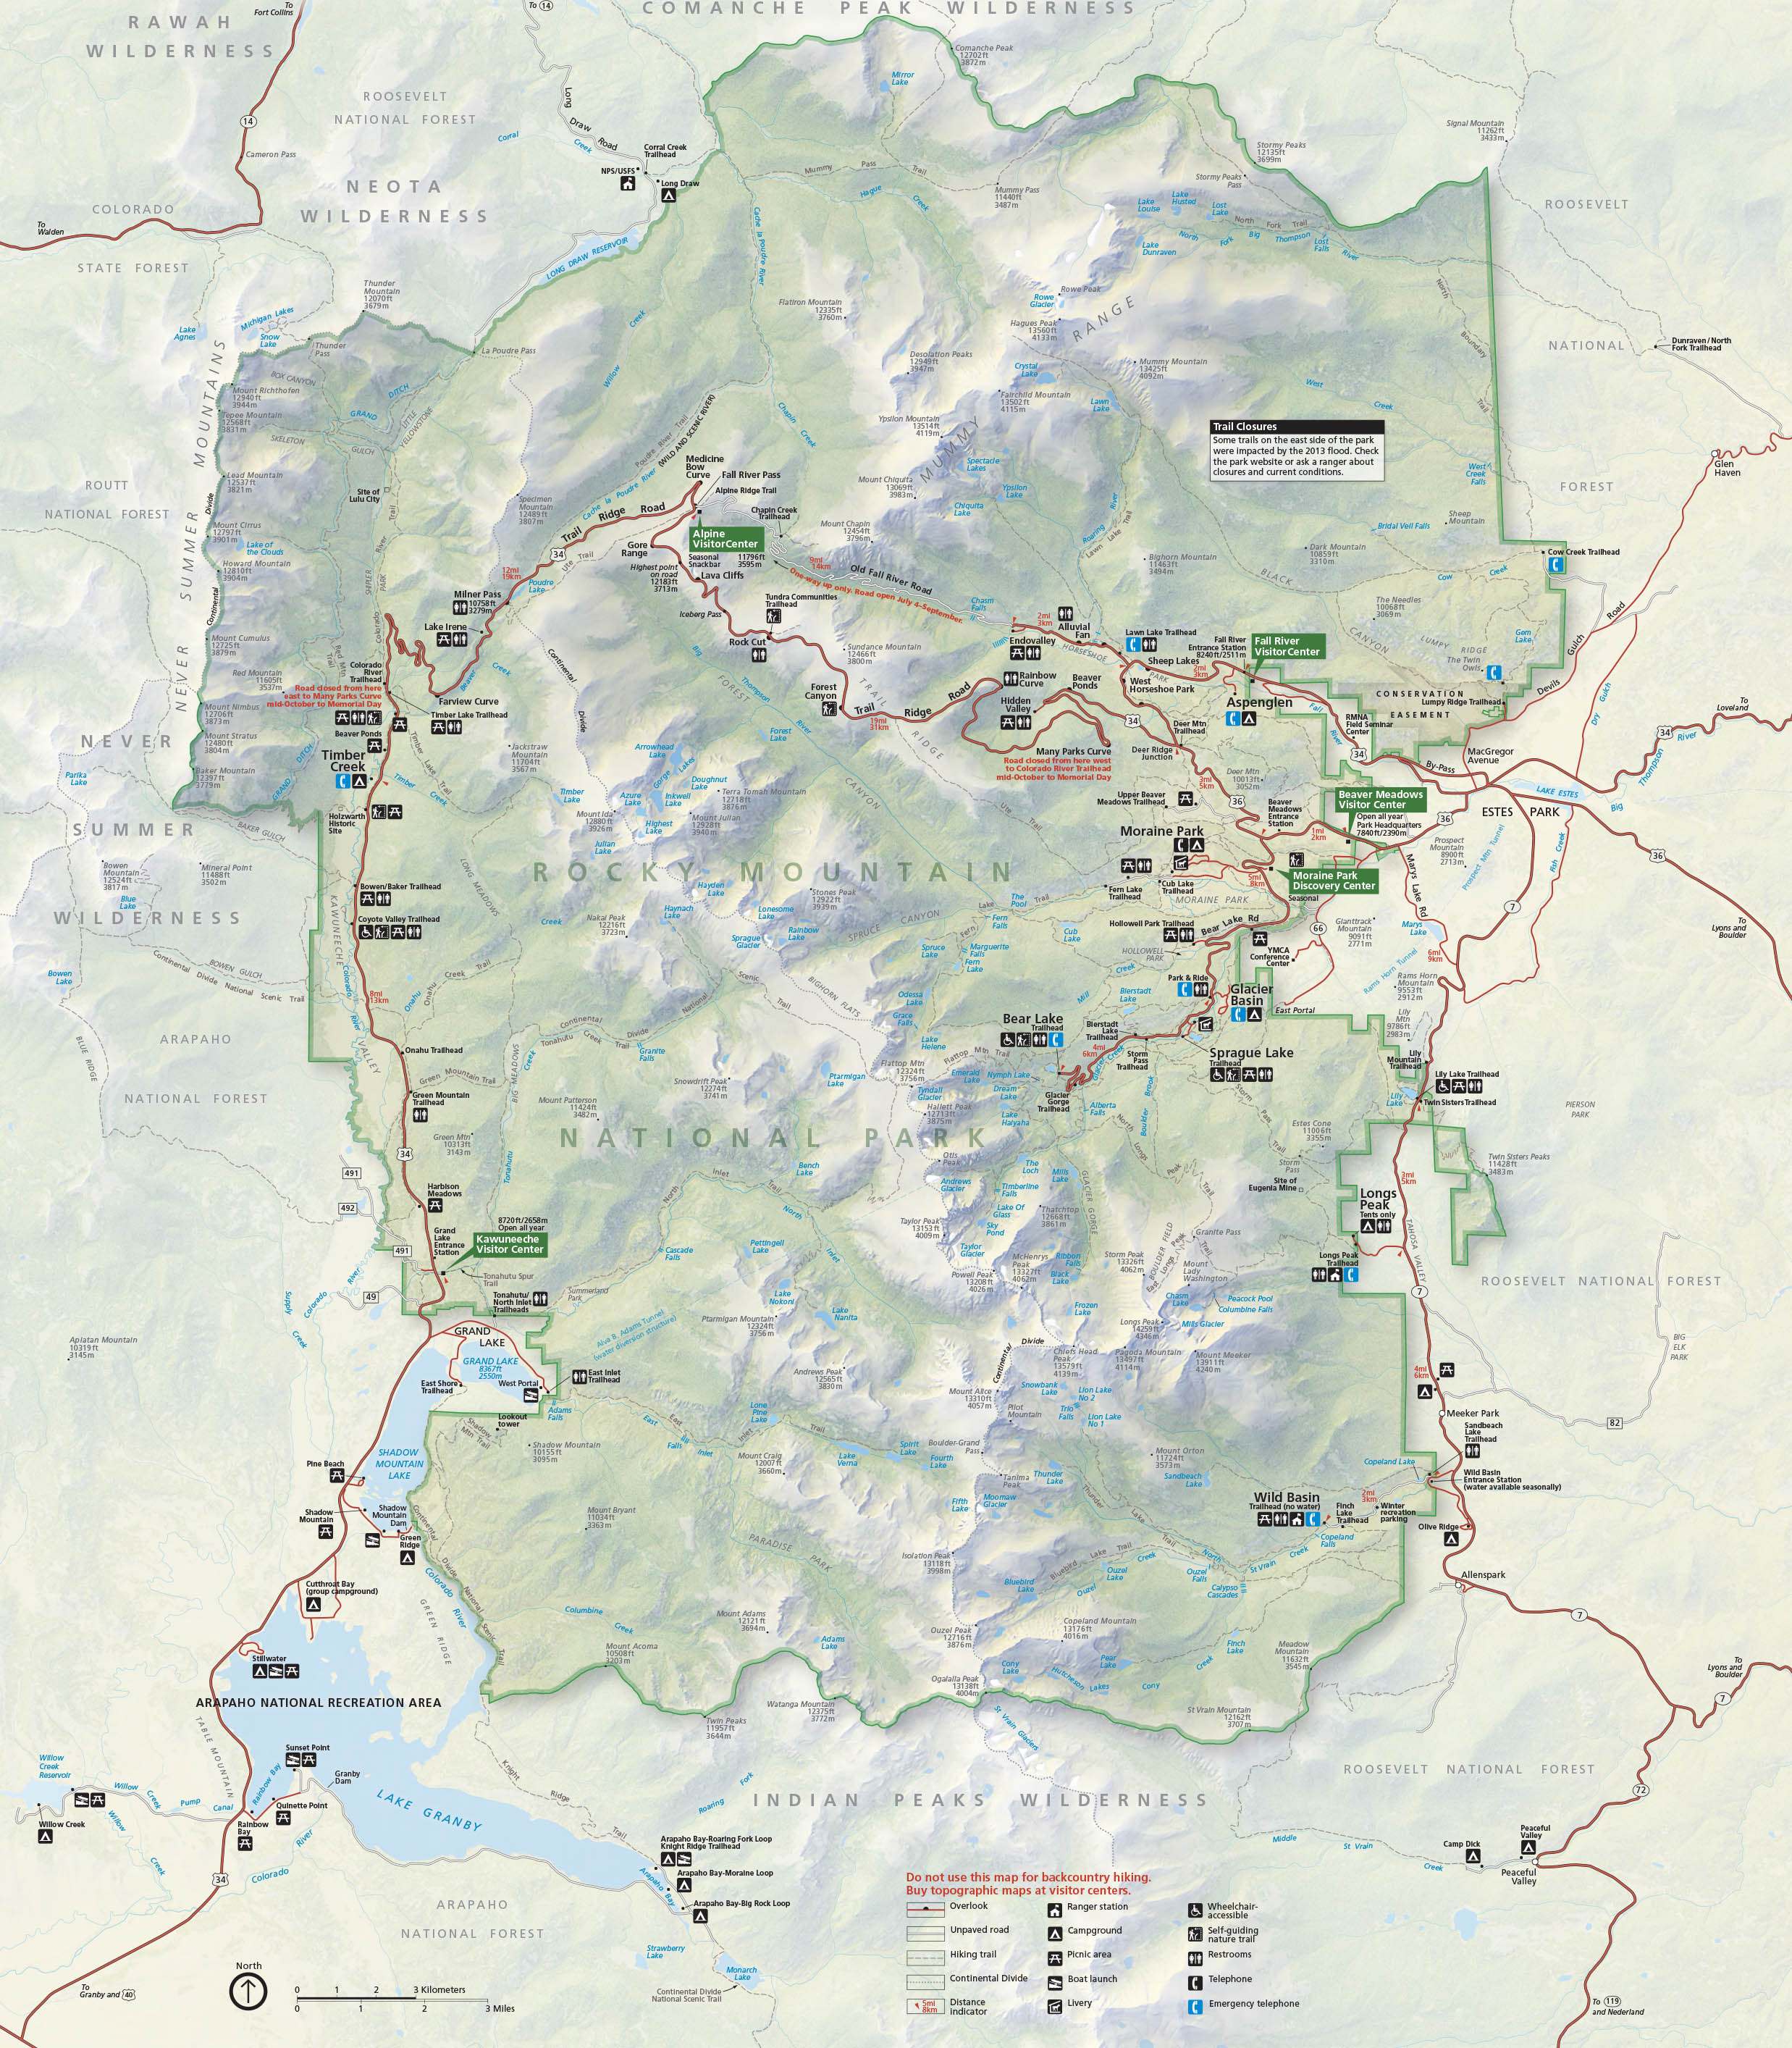 Lightning Maps Brochures Rocky Mountain National Park U S National Park Service